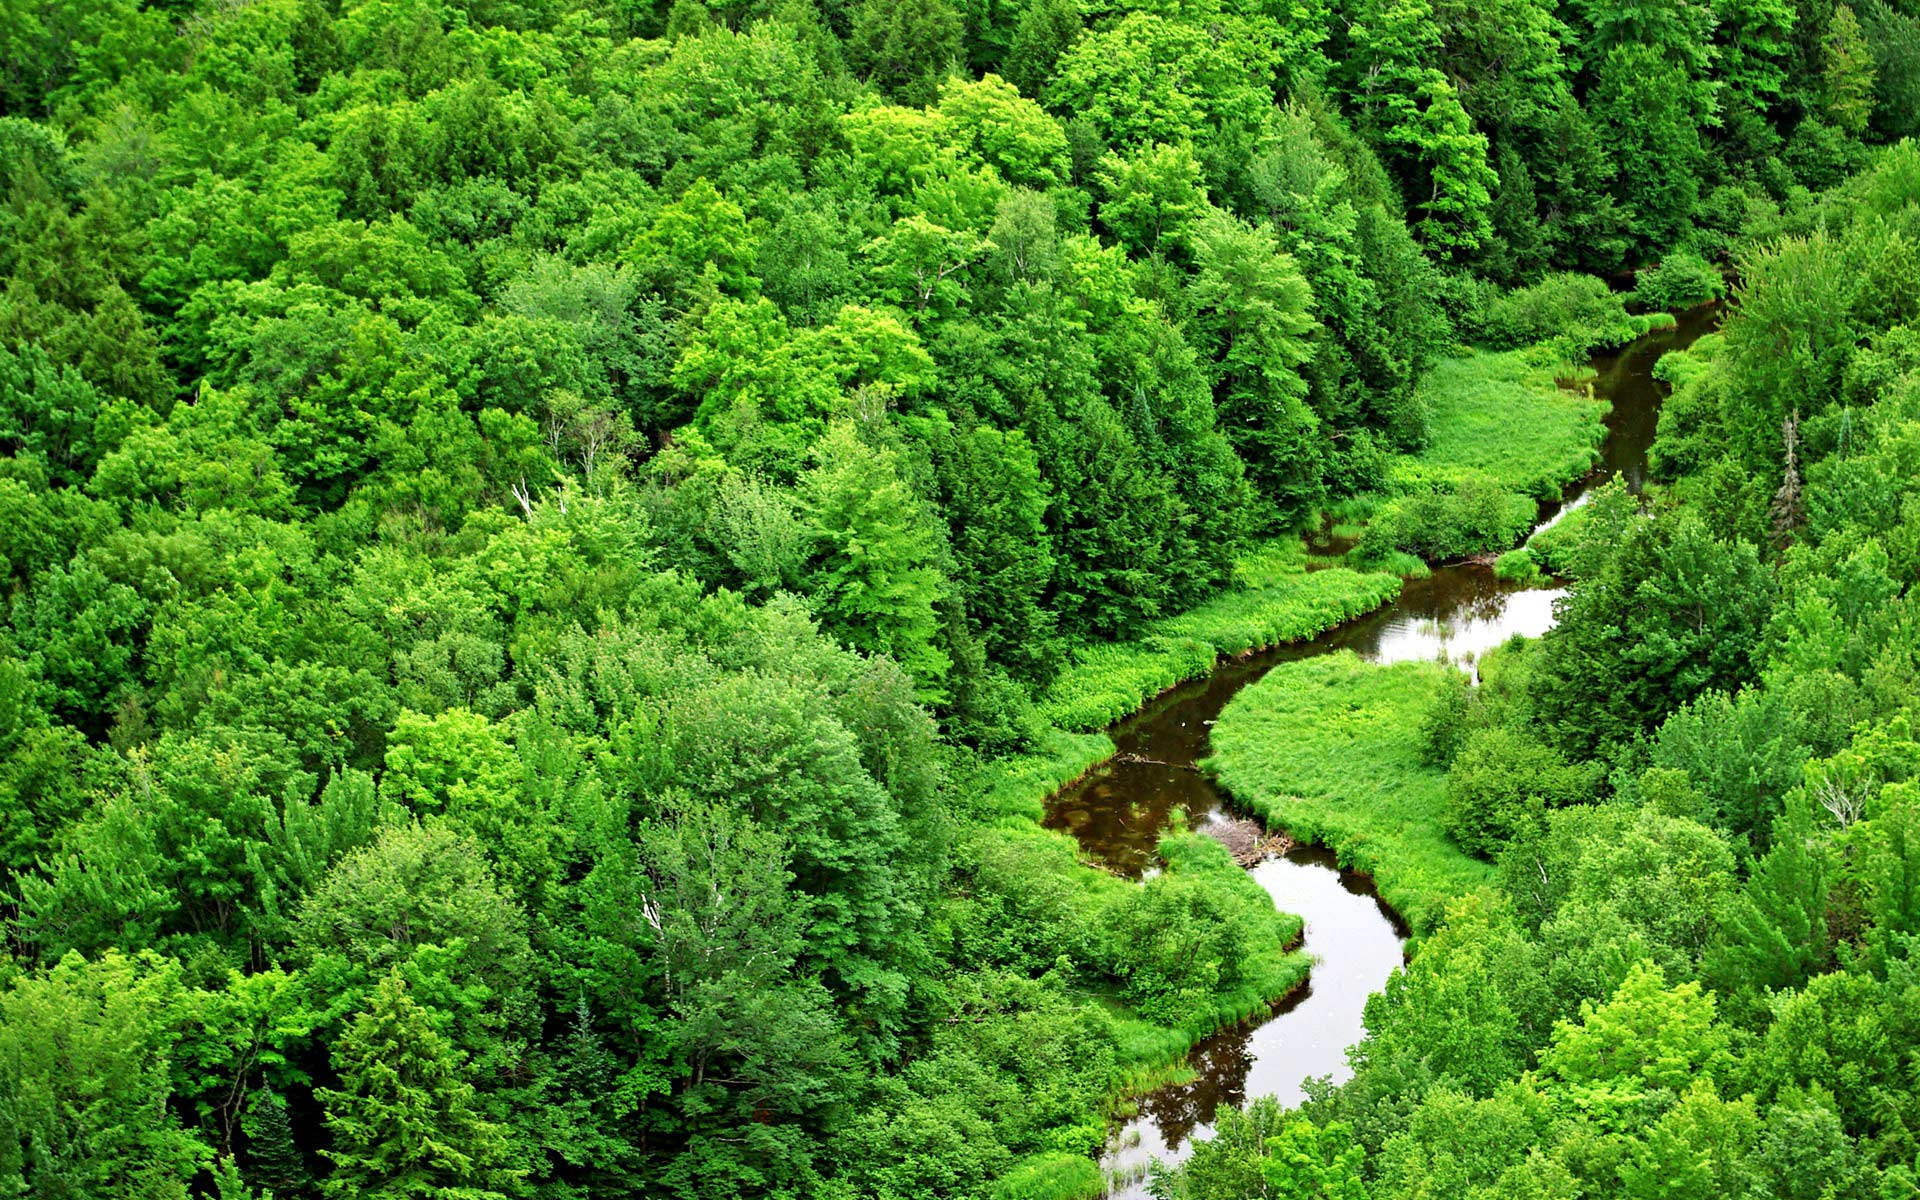 scenery wallpaper gallery paper stream forest about services 1920x1200